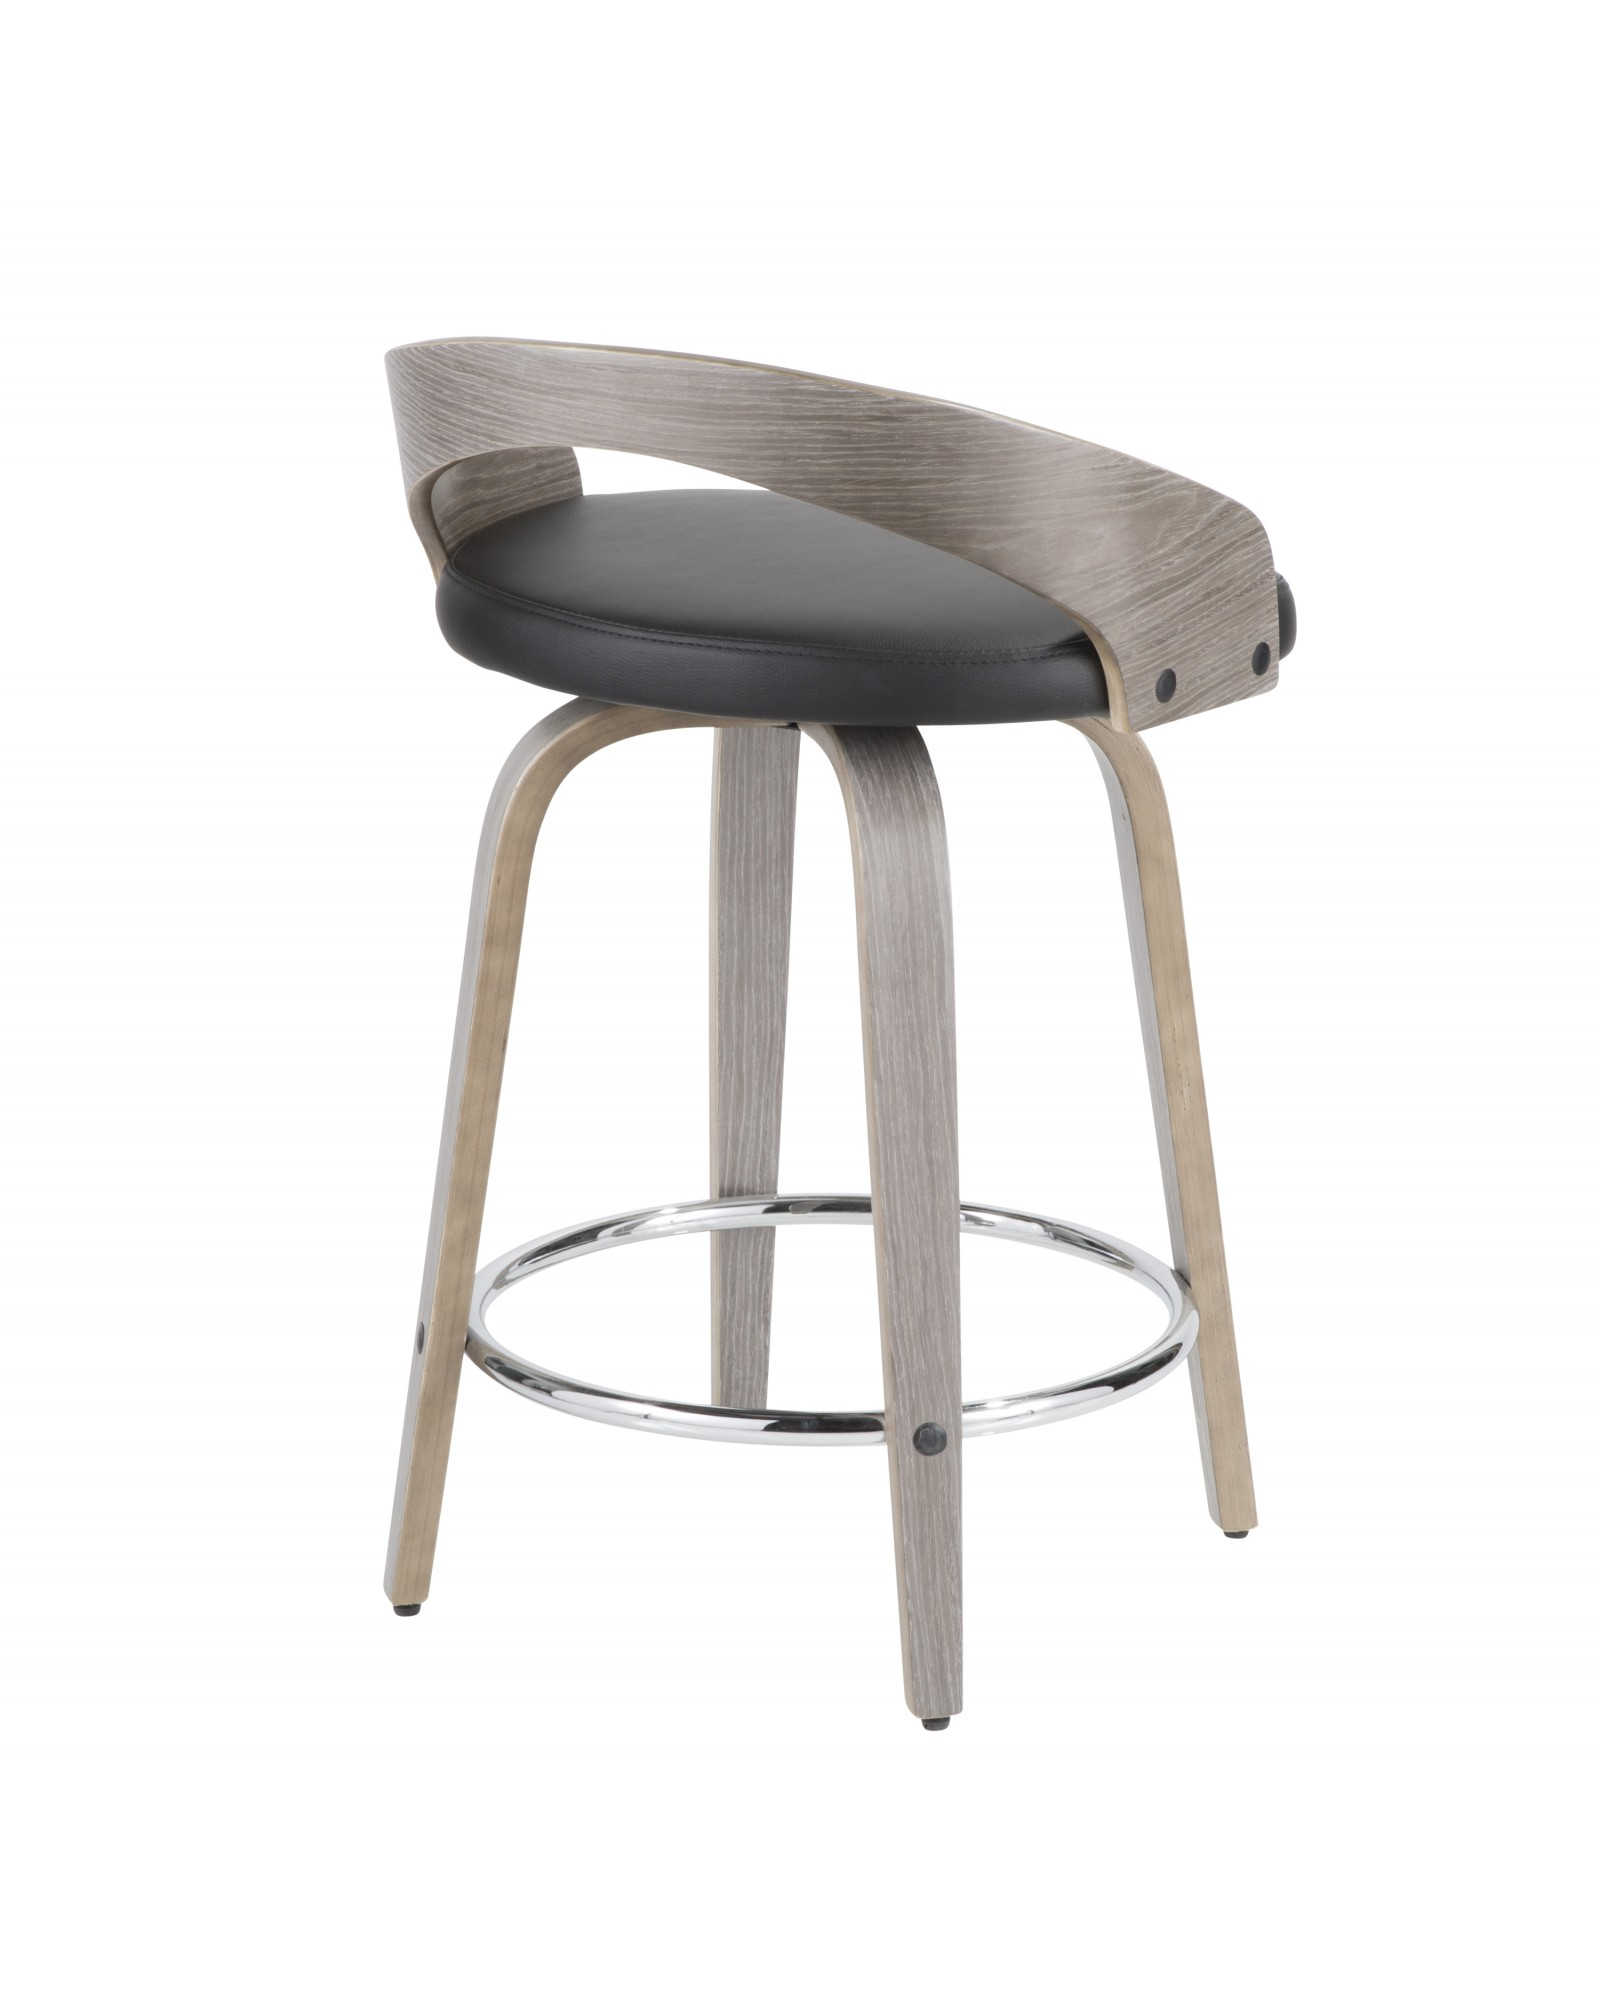 Awesome Grotto Counter Stool Grotto Mid Century Modern Counter Gmtry Best Dining Table And Chair Ideas Images Gmtryco